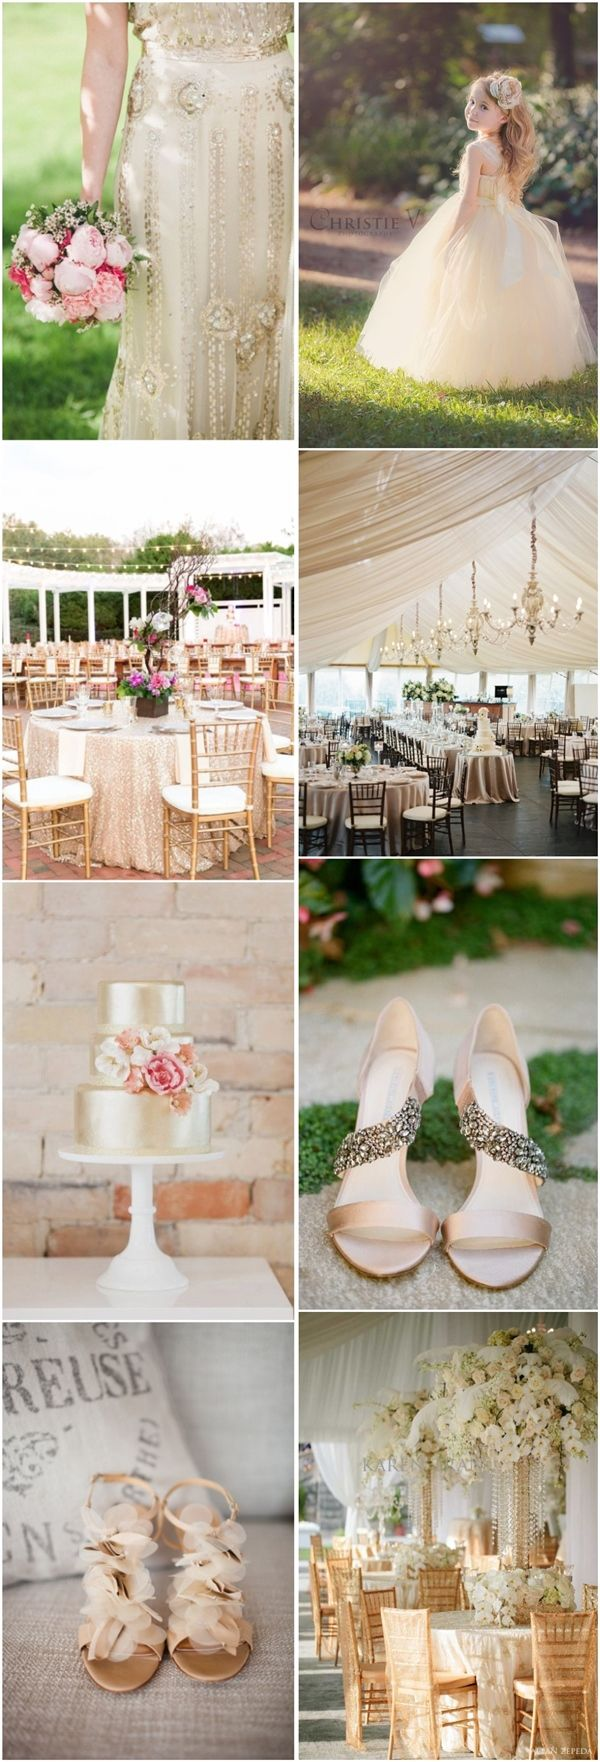 rustic champagne wedding color ideas / http://www.deerpearlflowers.com/23-elegant-and-classic-champagne-wedding-ideas/